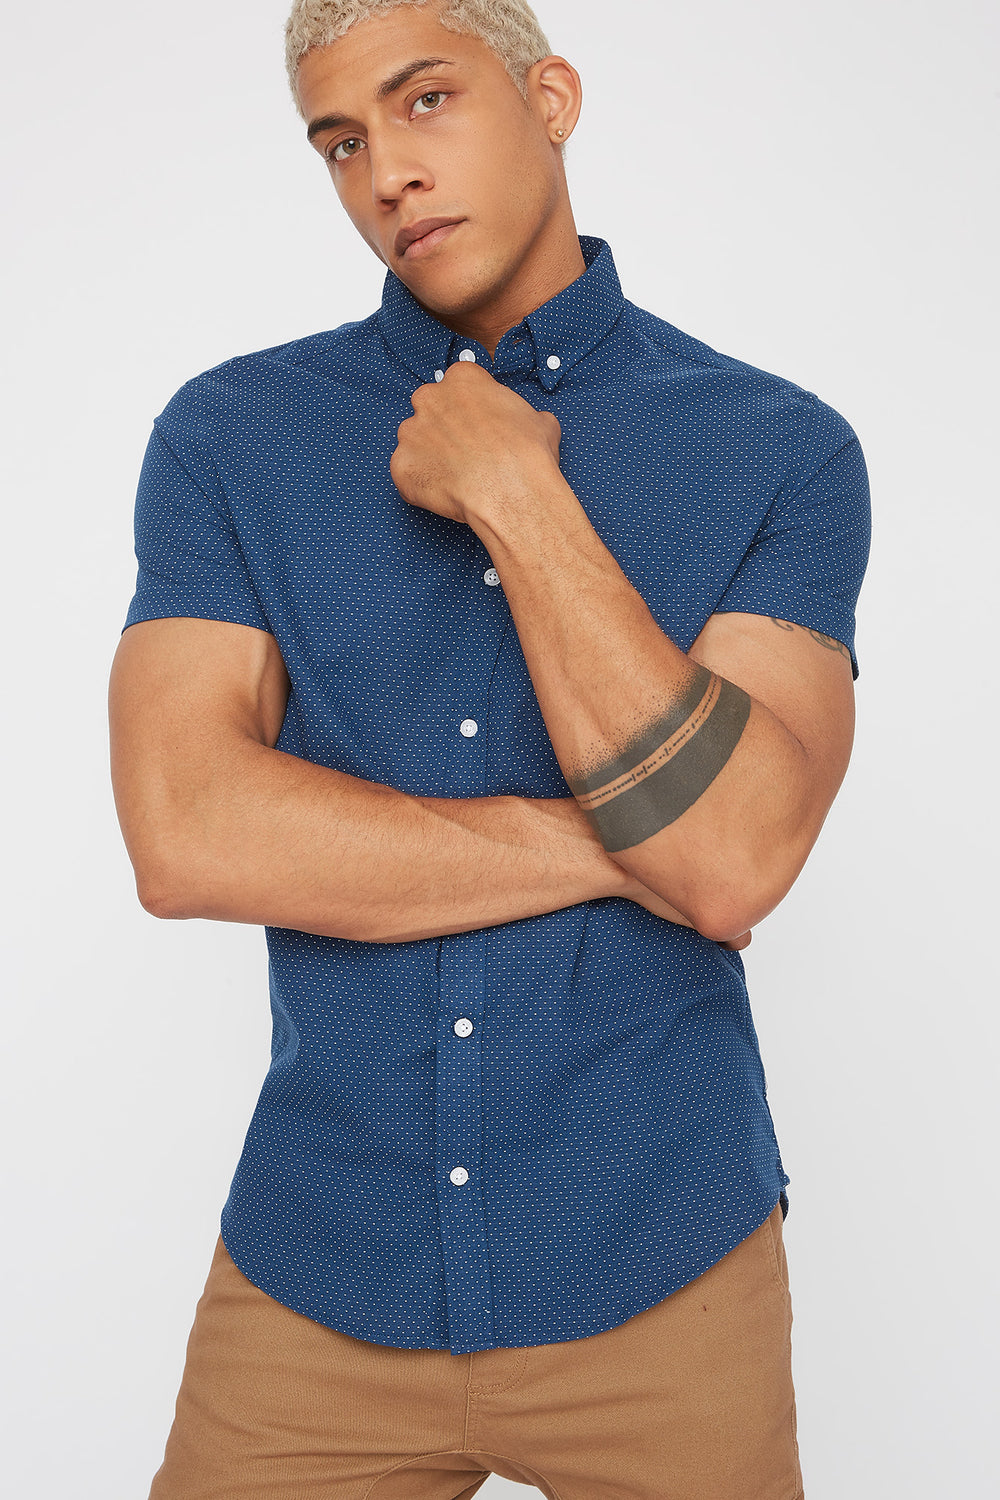 Dotted Button-Up Short Sleeve Shirt Navy